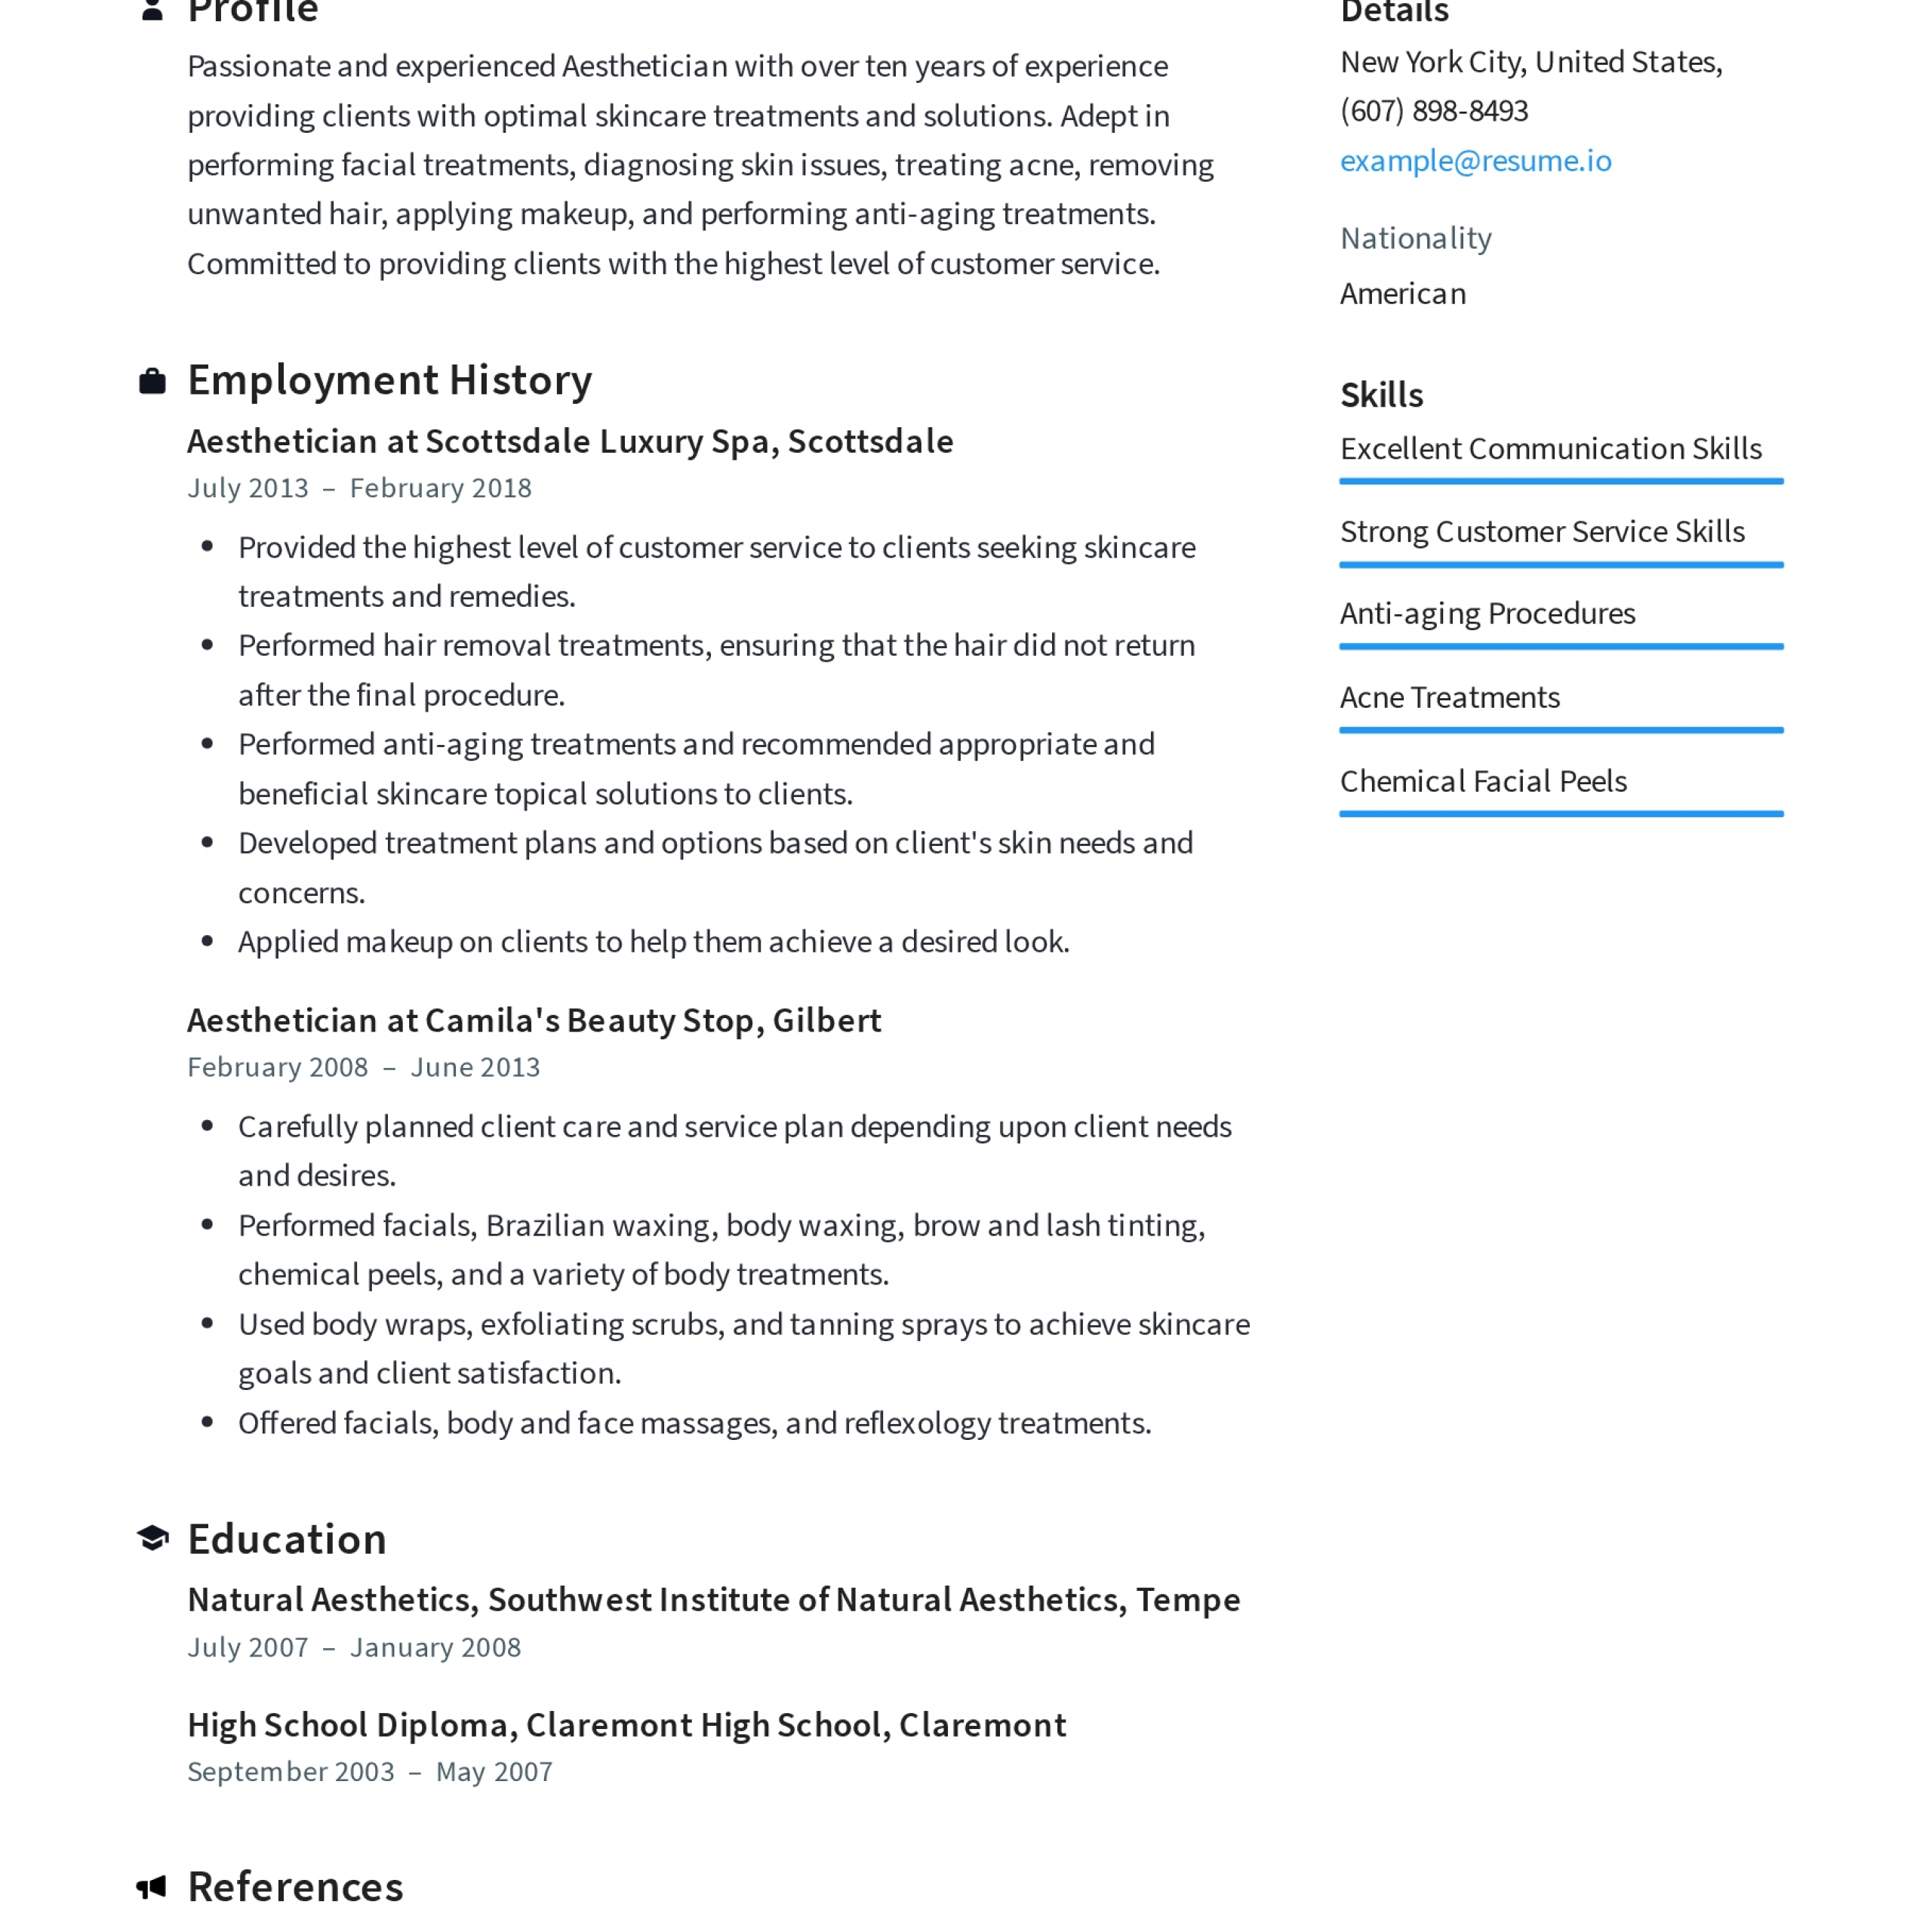 Aesthetician Resume Templates 2019 (Free Download) · Resume.io